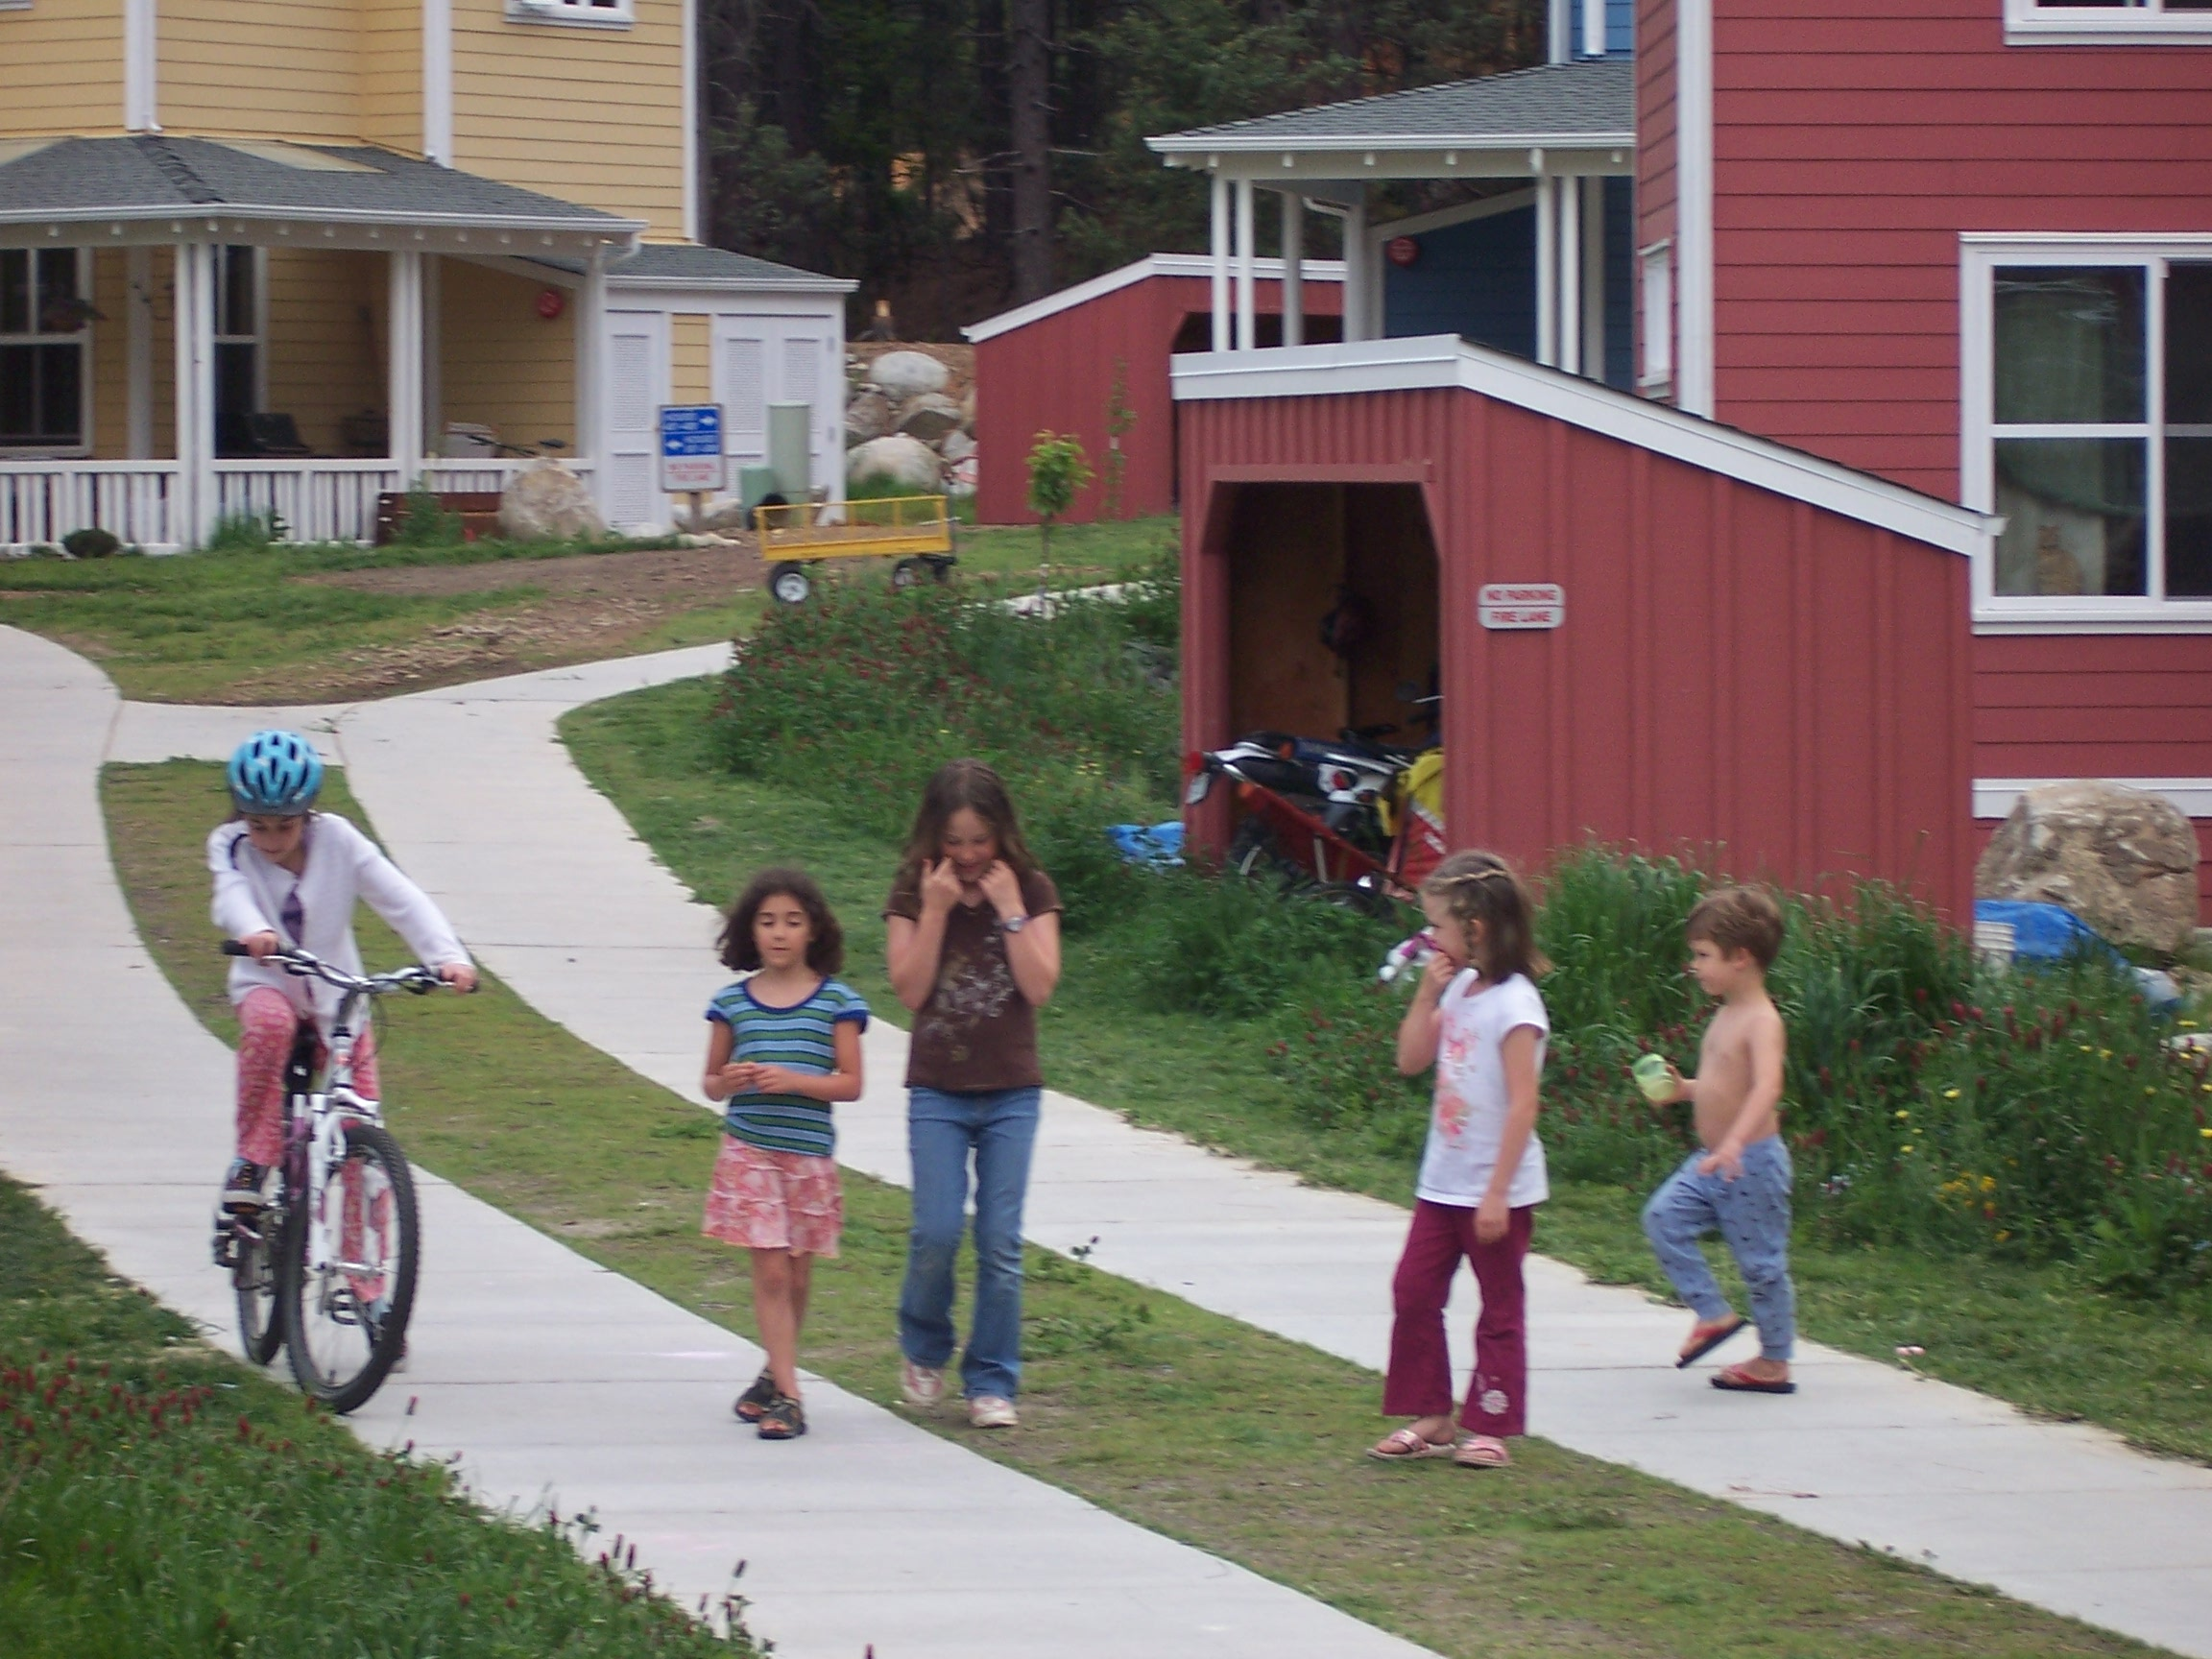 Nevada City Cohousing, Nevada City, CA